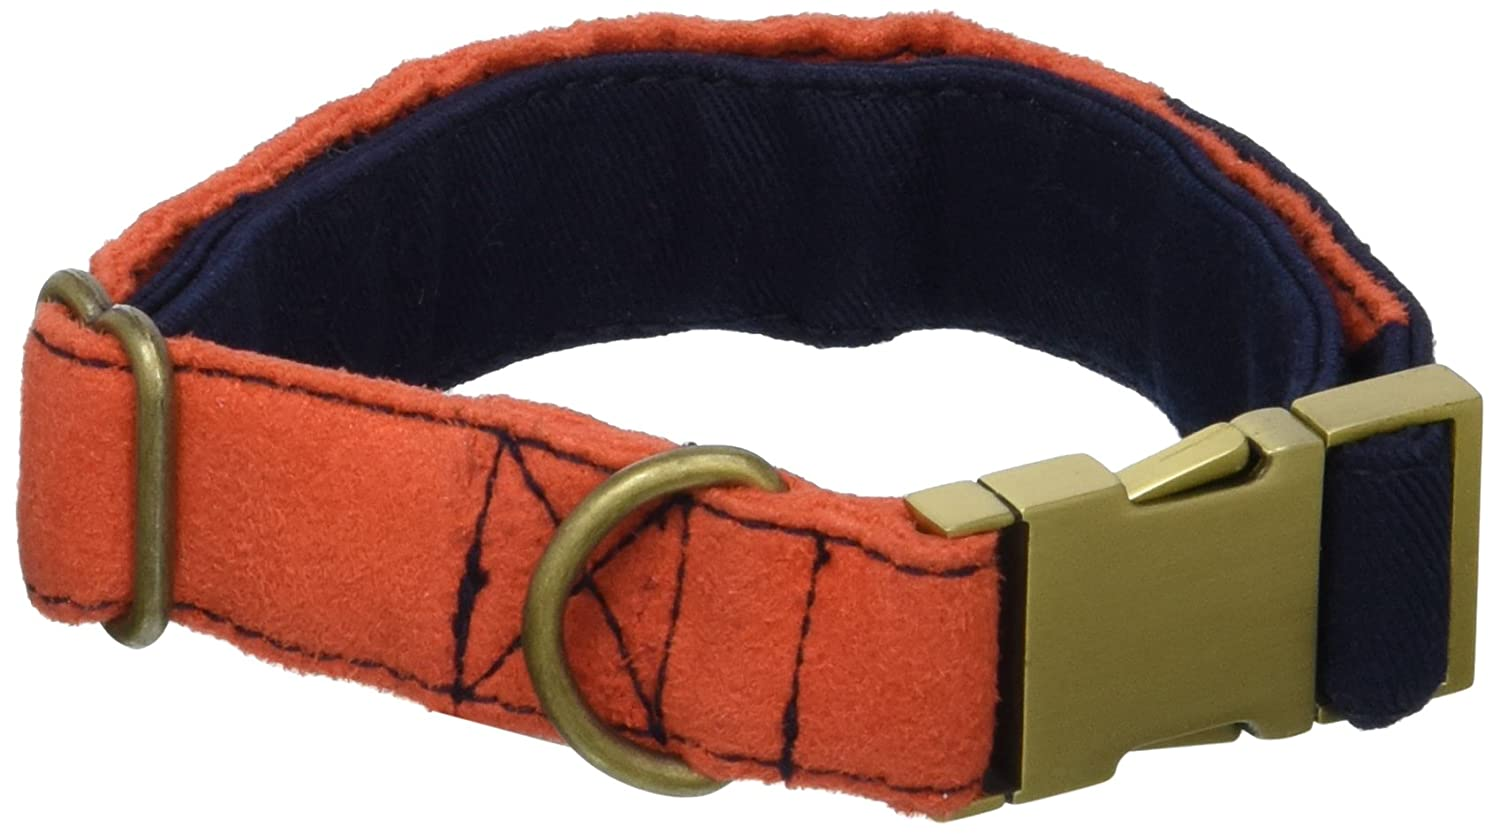 orange Blinks  One in a Million Collar, orange Suede and Dark bluee Twill with Bronze Metal Buckle, Medium, orange Dark bluee